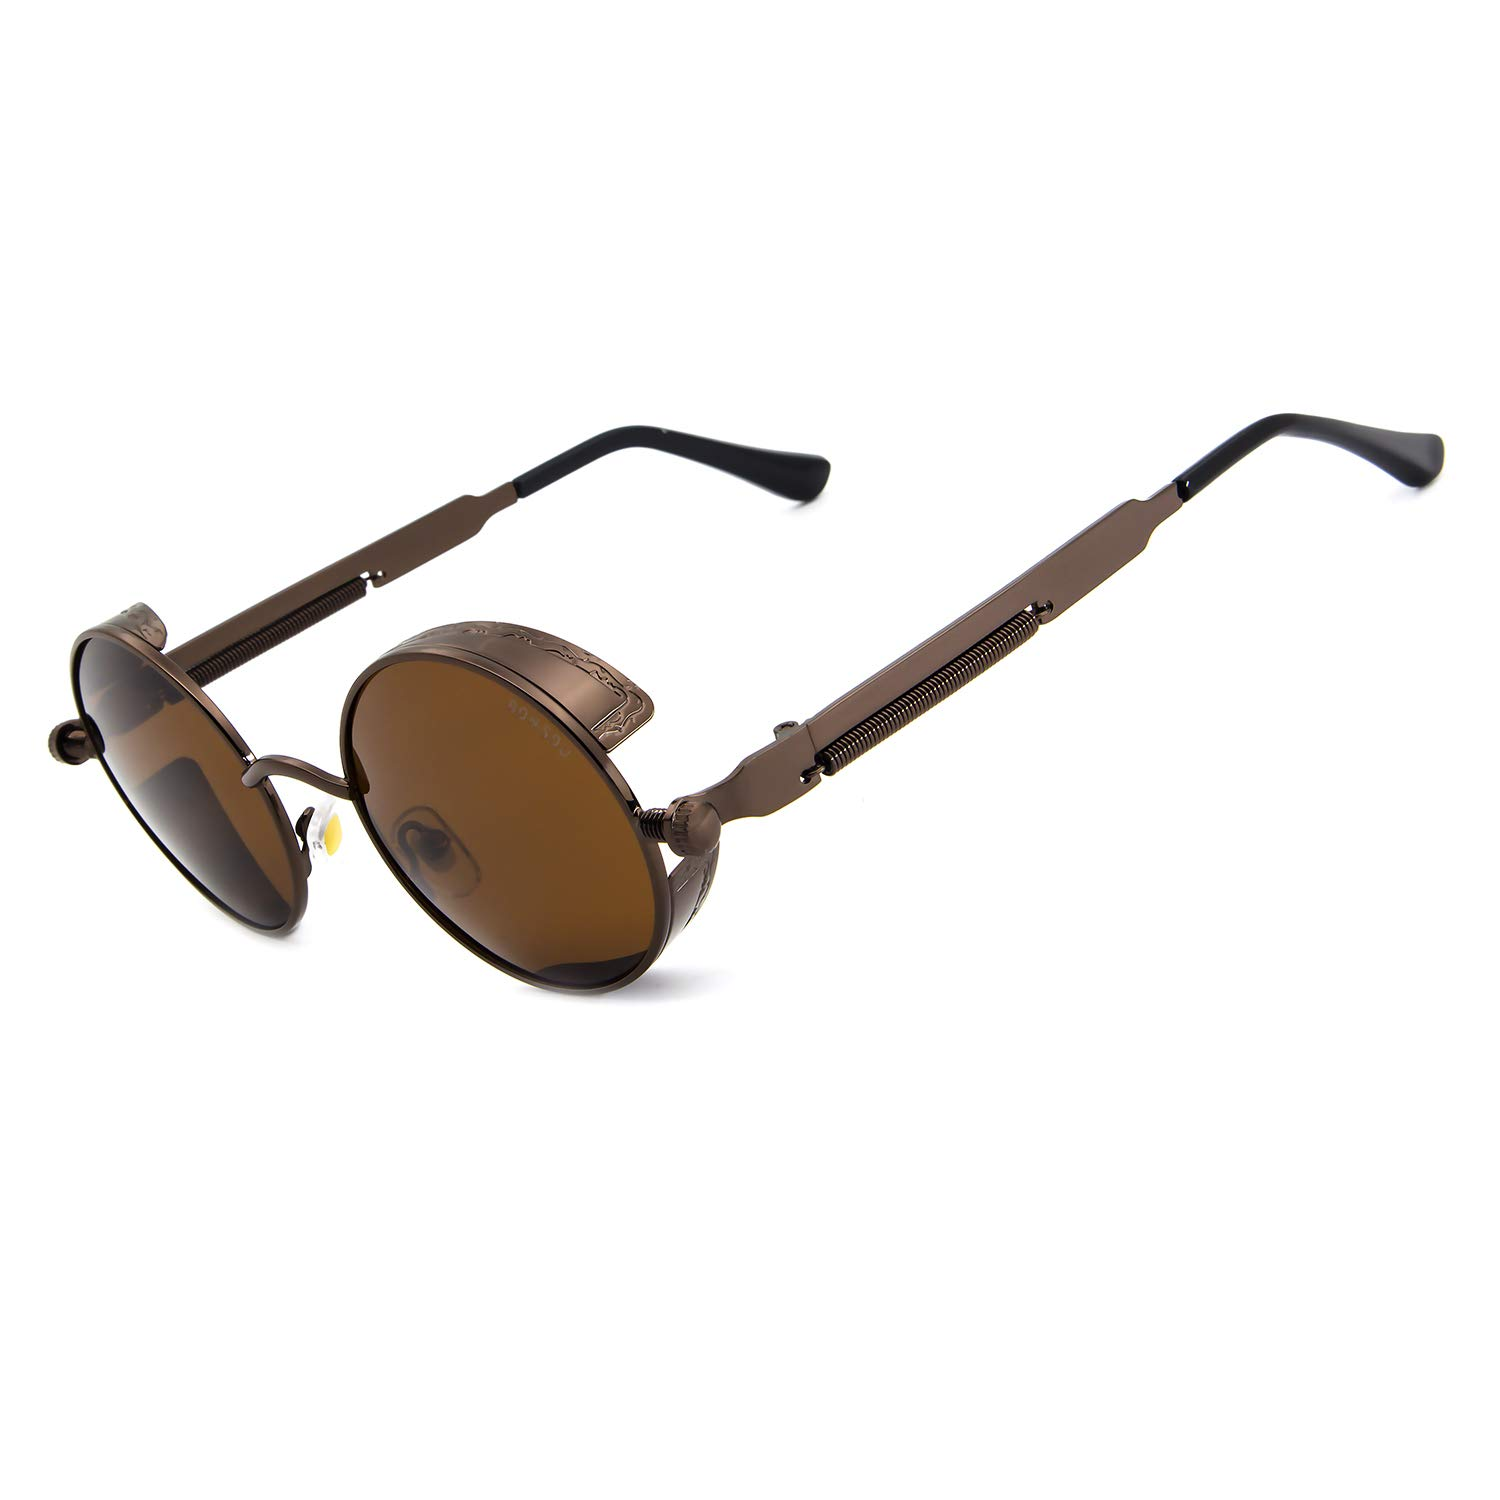 Men's Steampunk Goggles, Guns, Gadgets & Watches Ronsou Steampunk Style Round Vintage Polarized Sunglasses Retro Eyewear UV400 Protection Matel Frame $16.99 AT vintagedancer.com